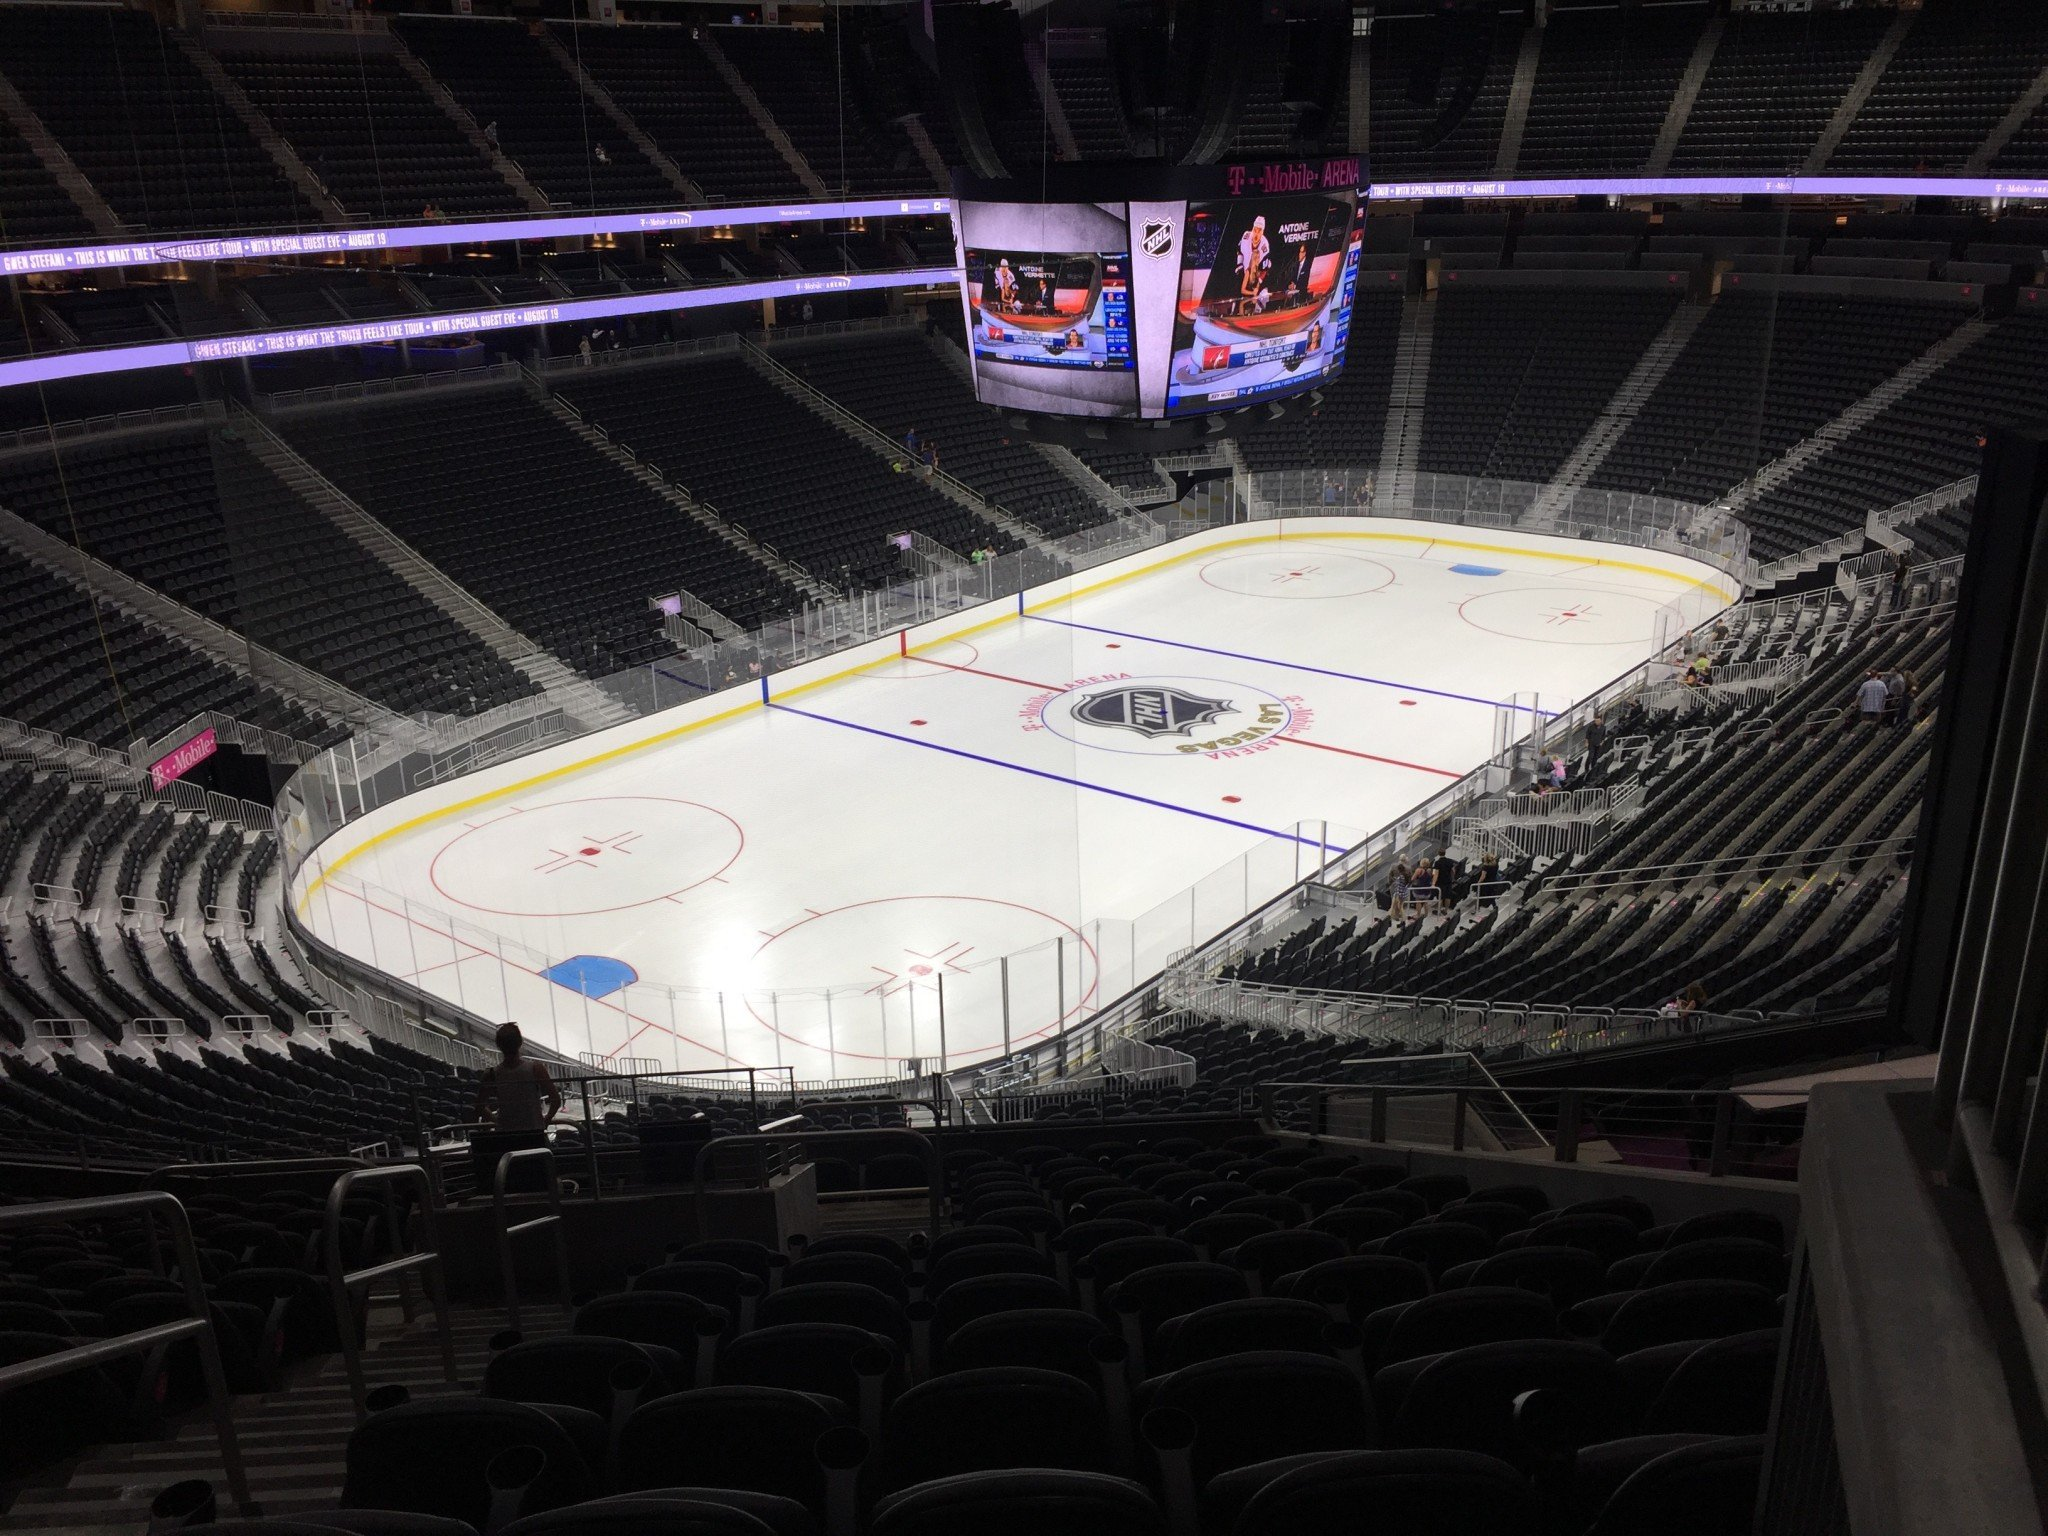 Best, Worst Seat From Each P-Section At T-Mobile Arena